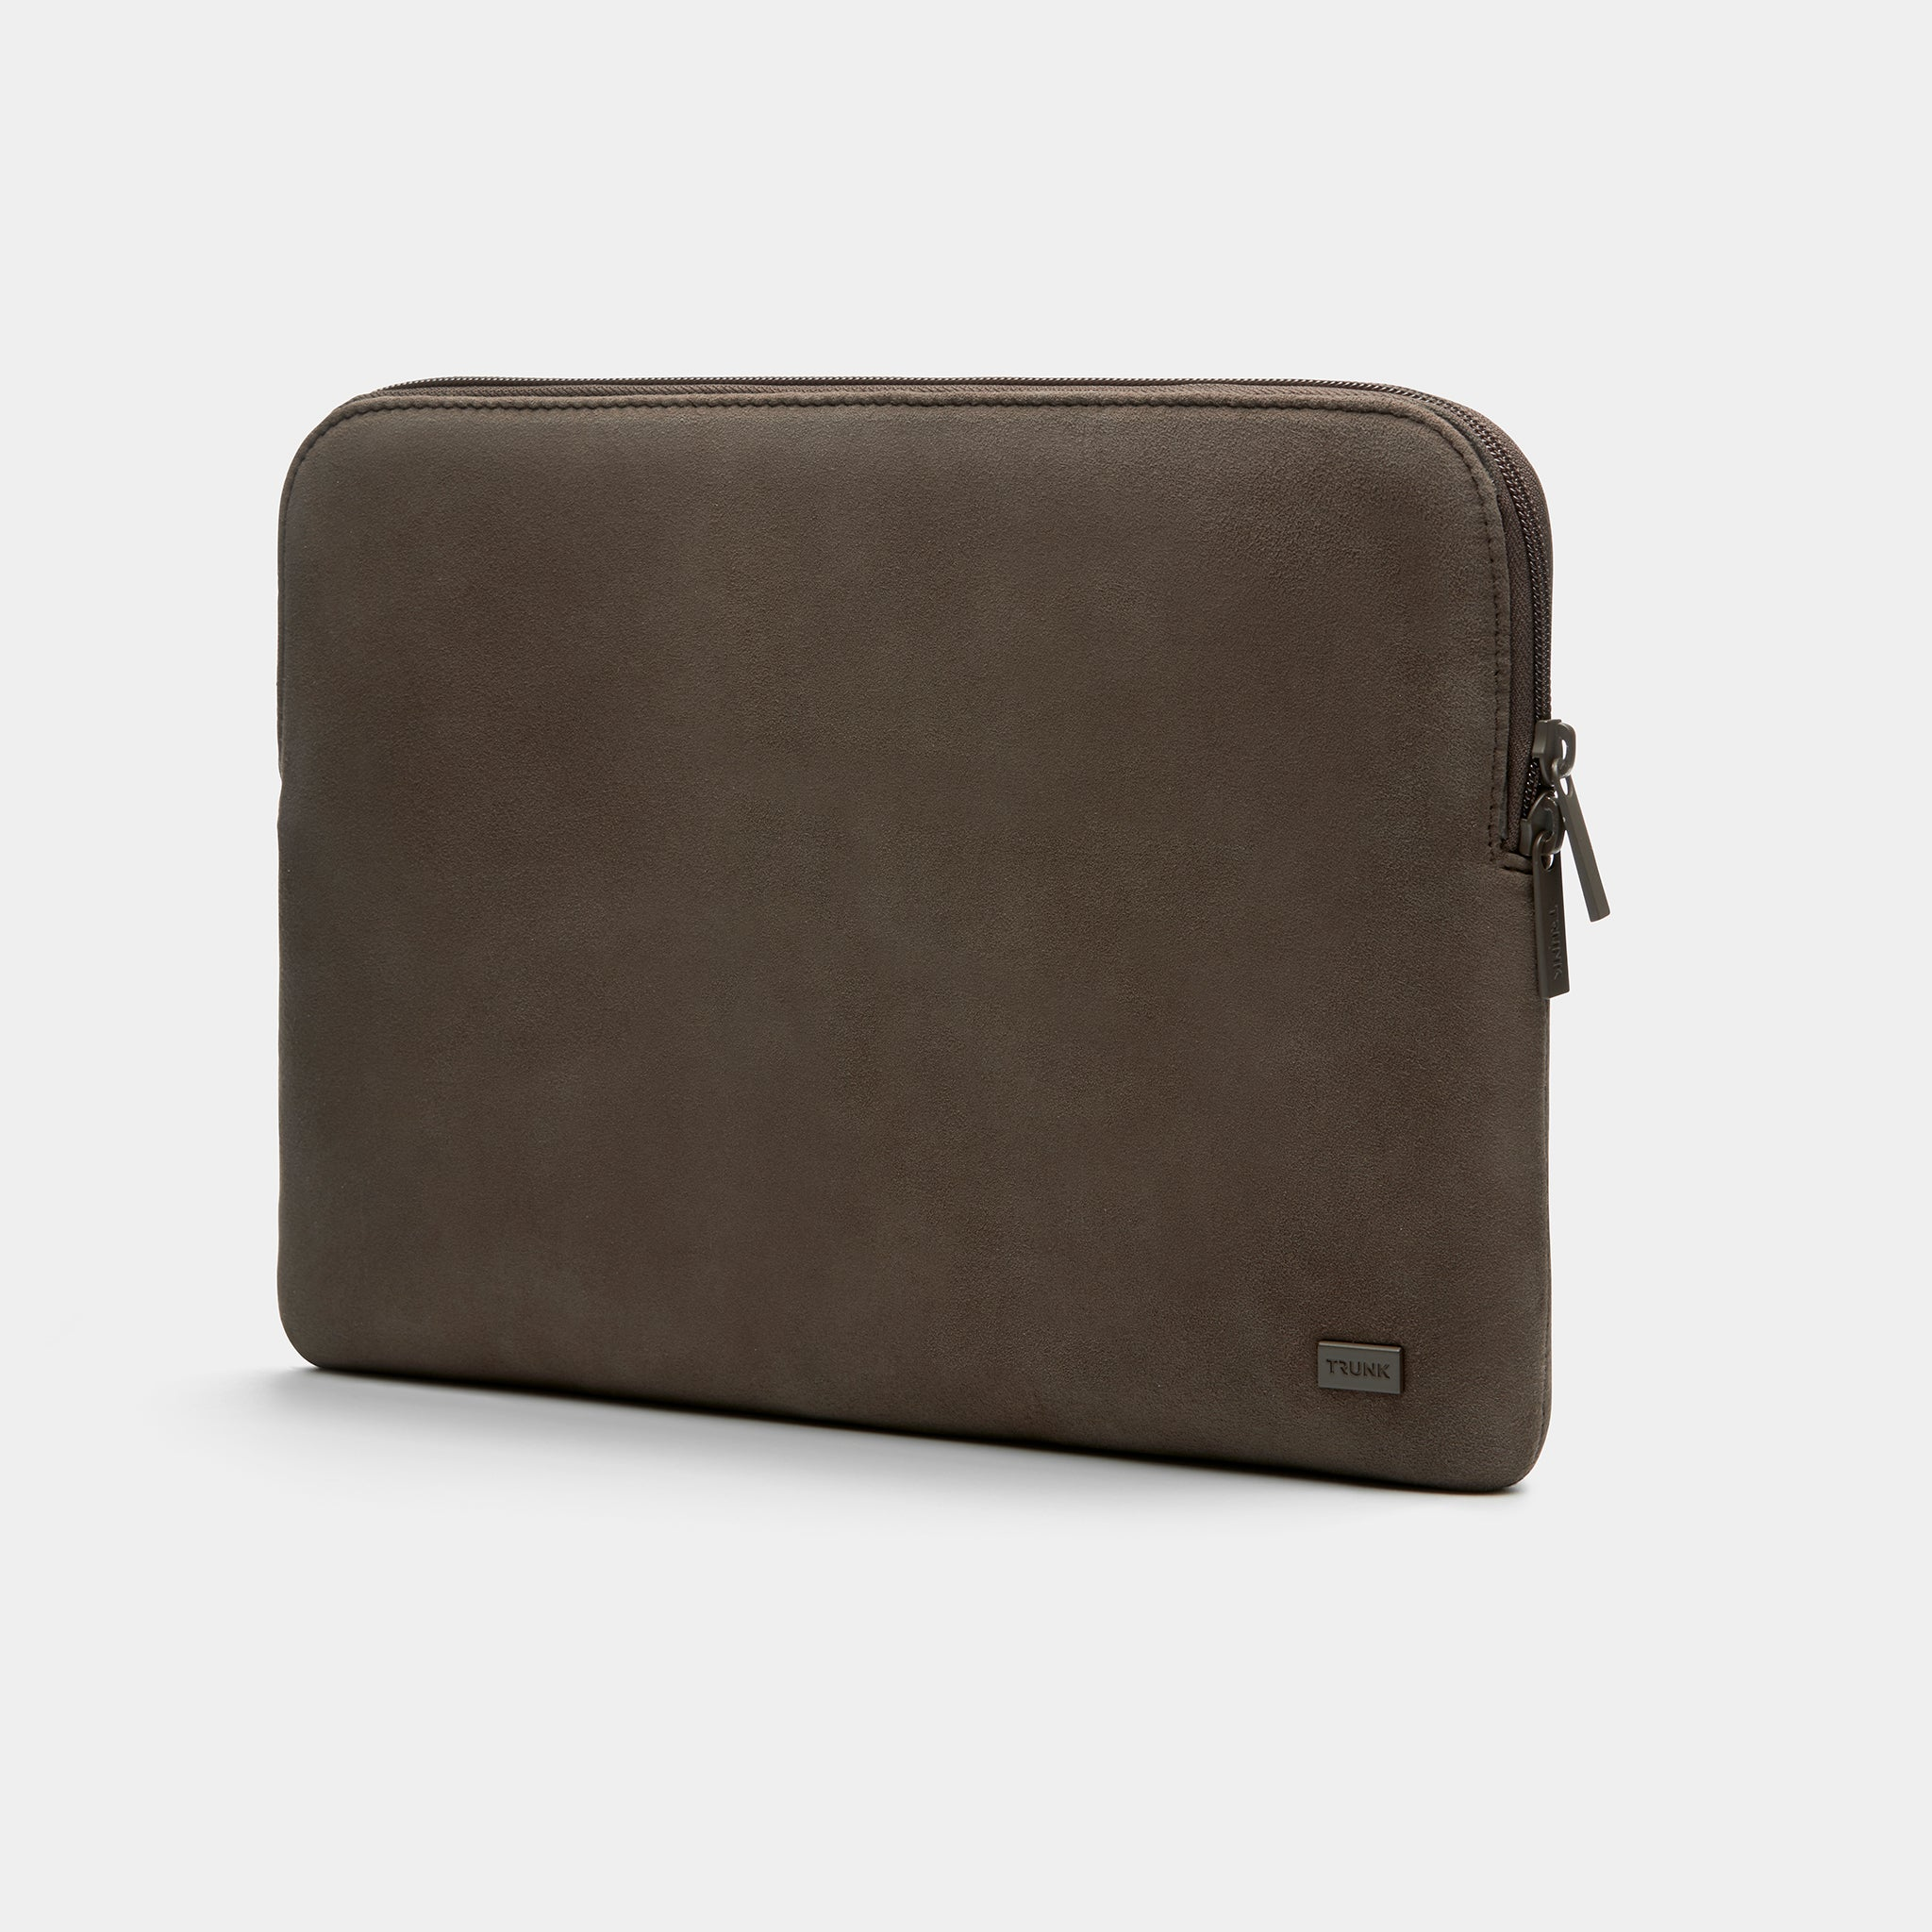 Suede Brown - Neoprene Sleeve